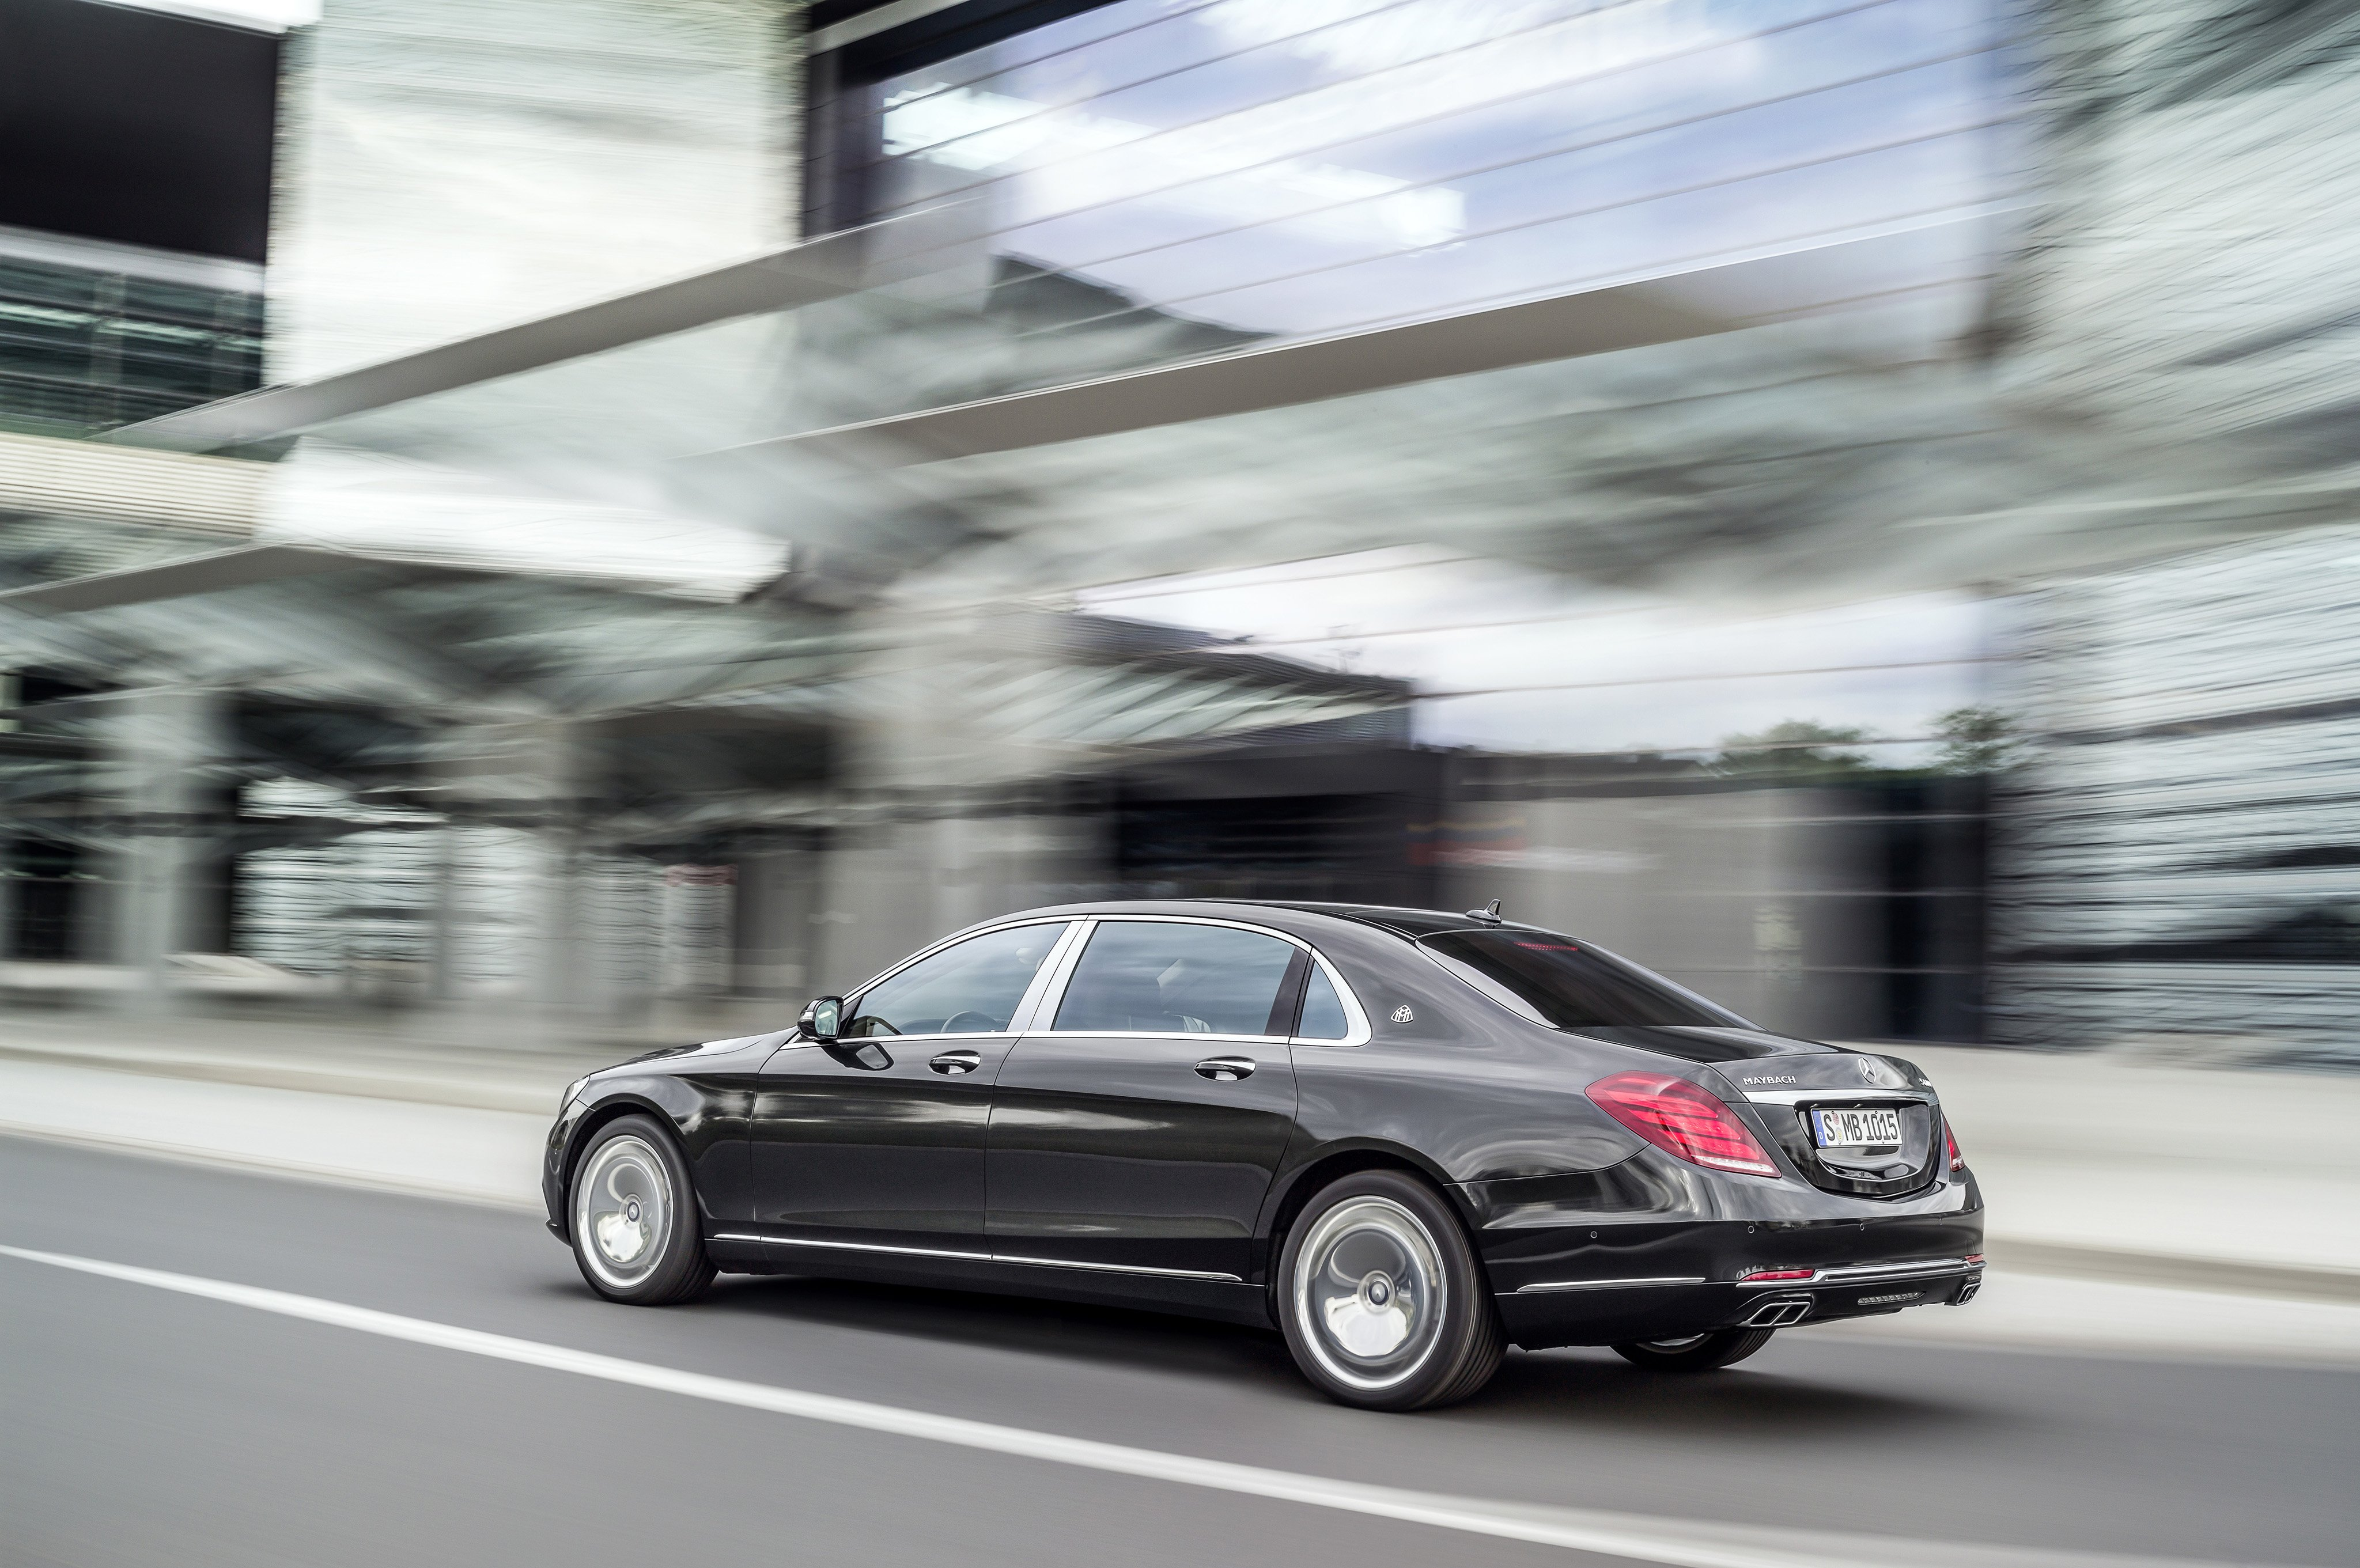 2015 Mercedes Benz Maybach S600 X222 luxury wallpaper 4096x2722